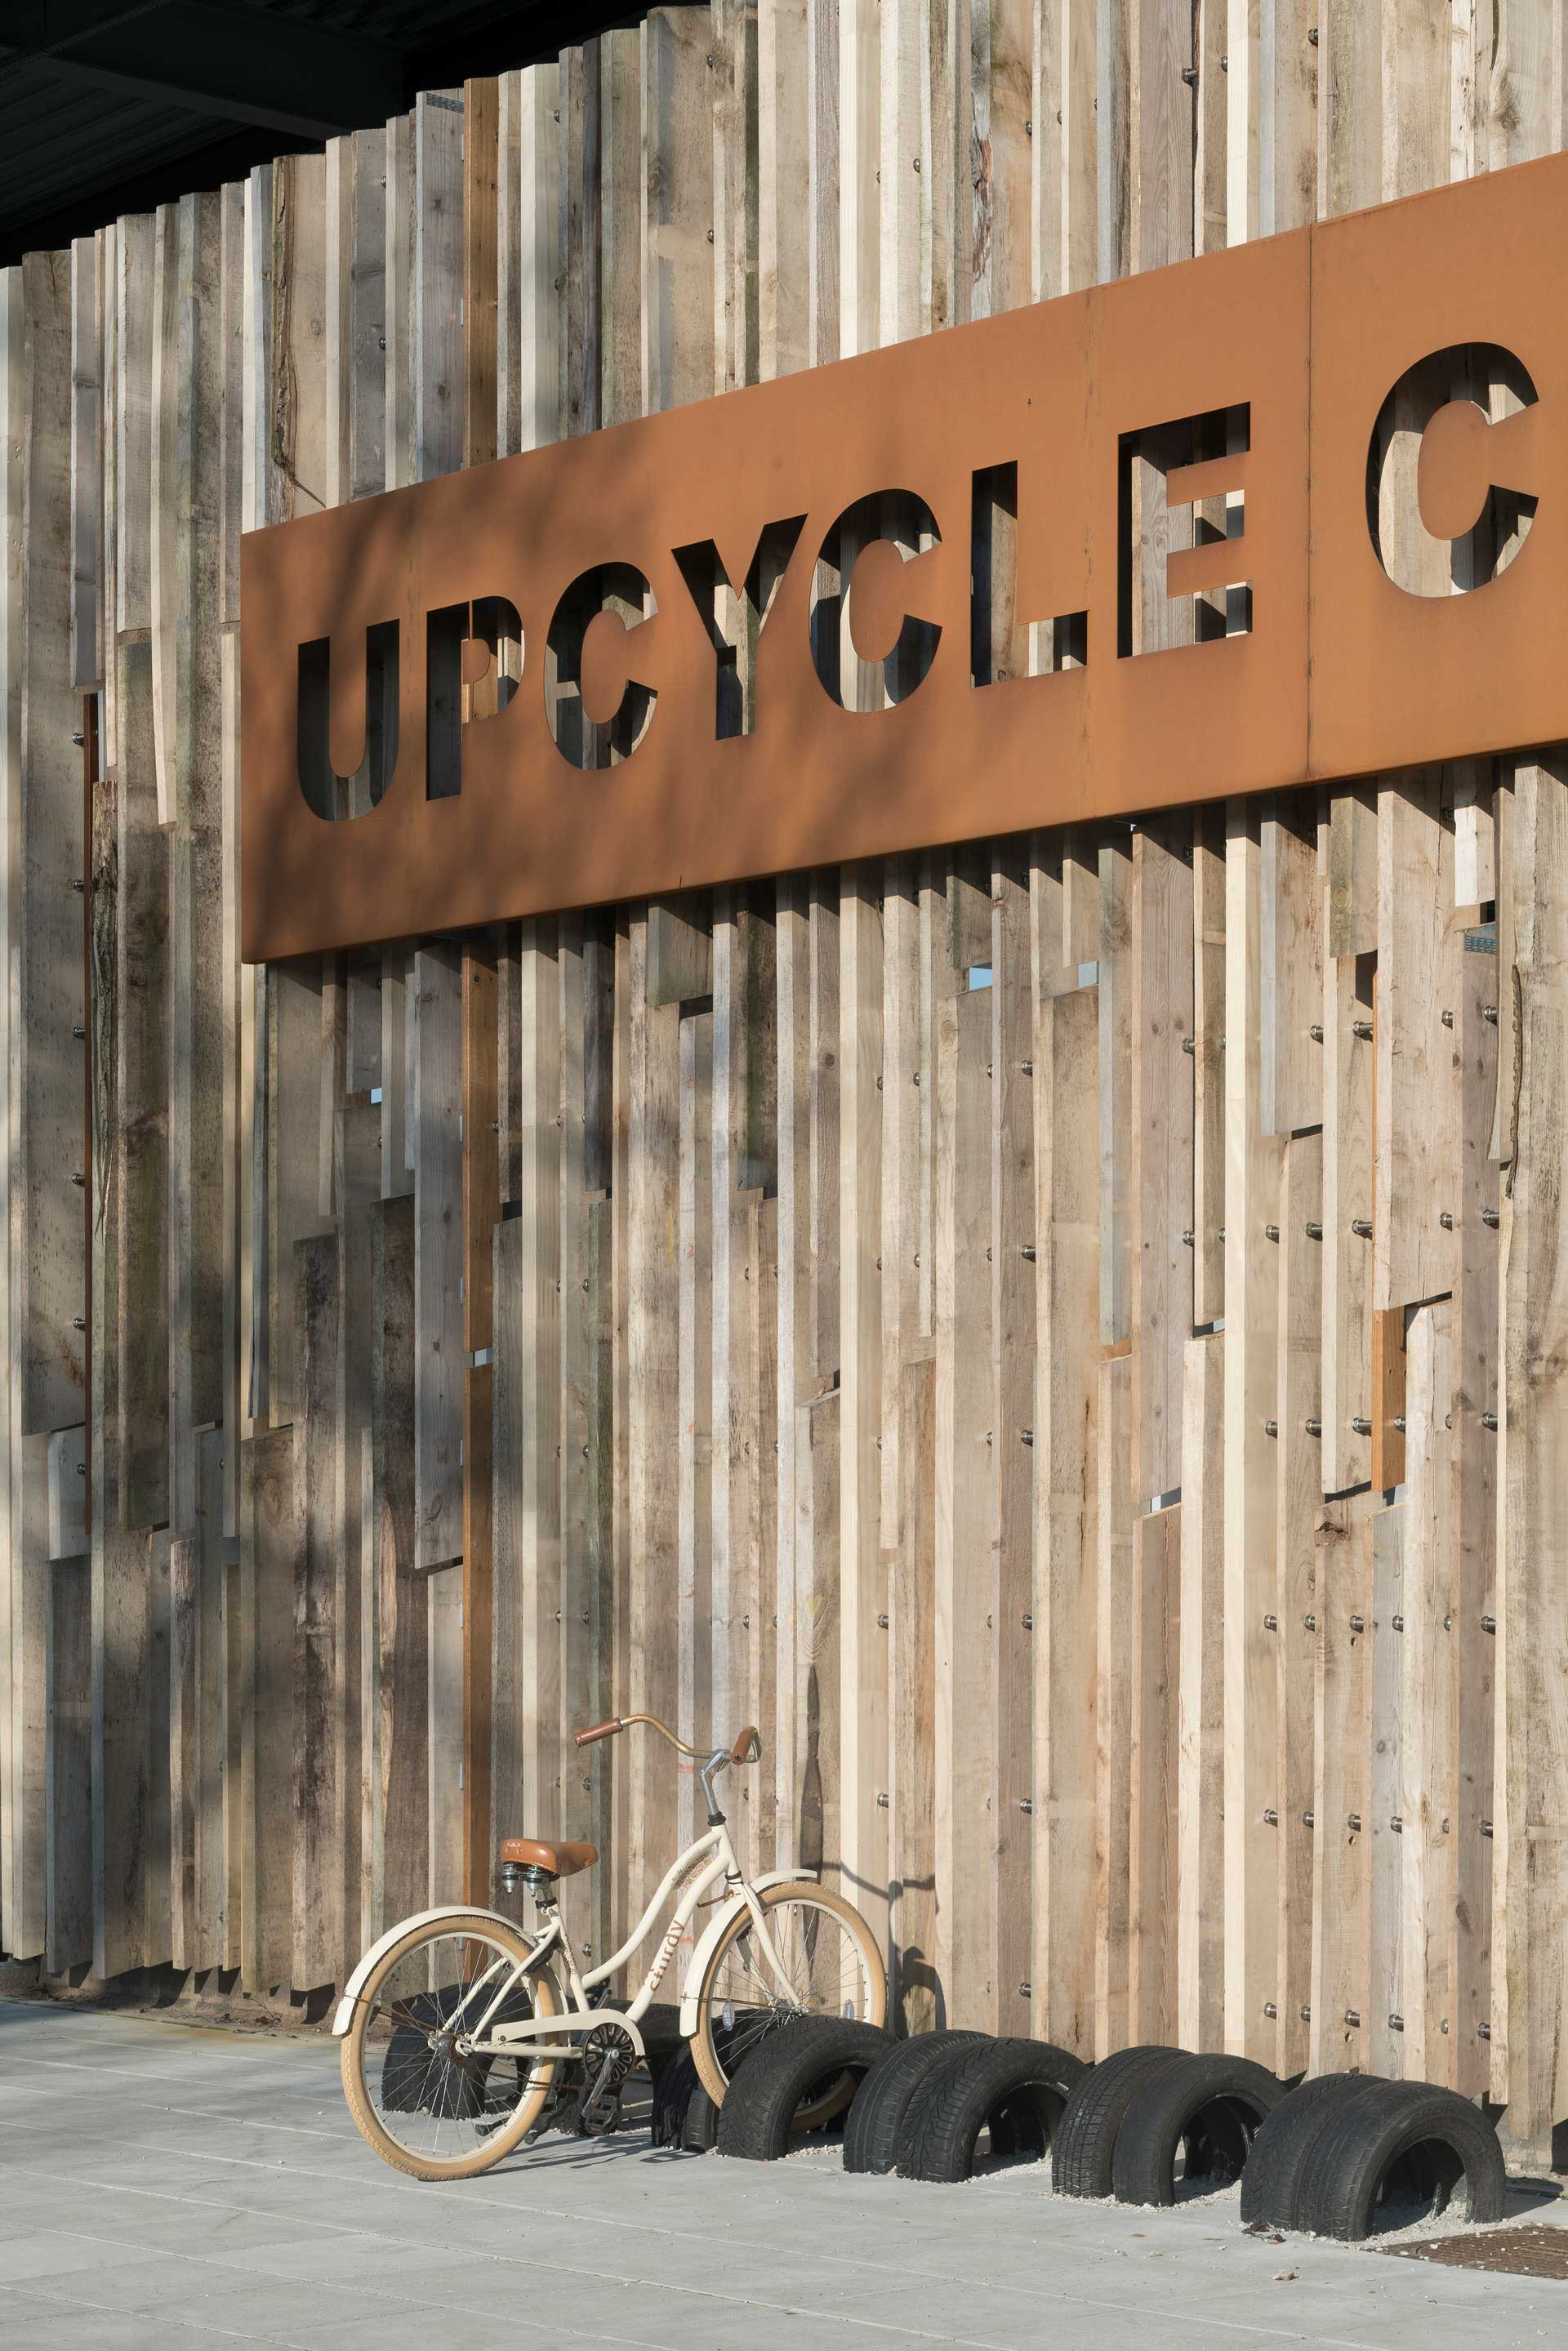 Almere - Upcycle Centrum